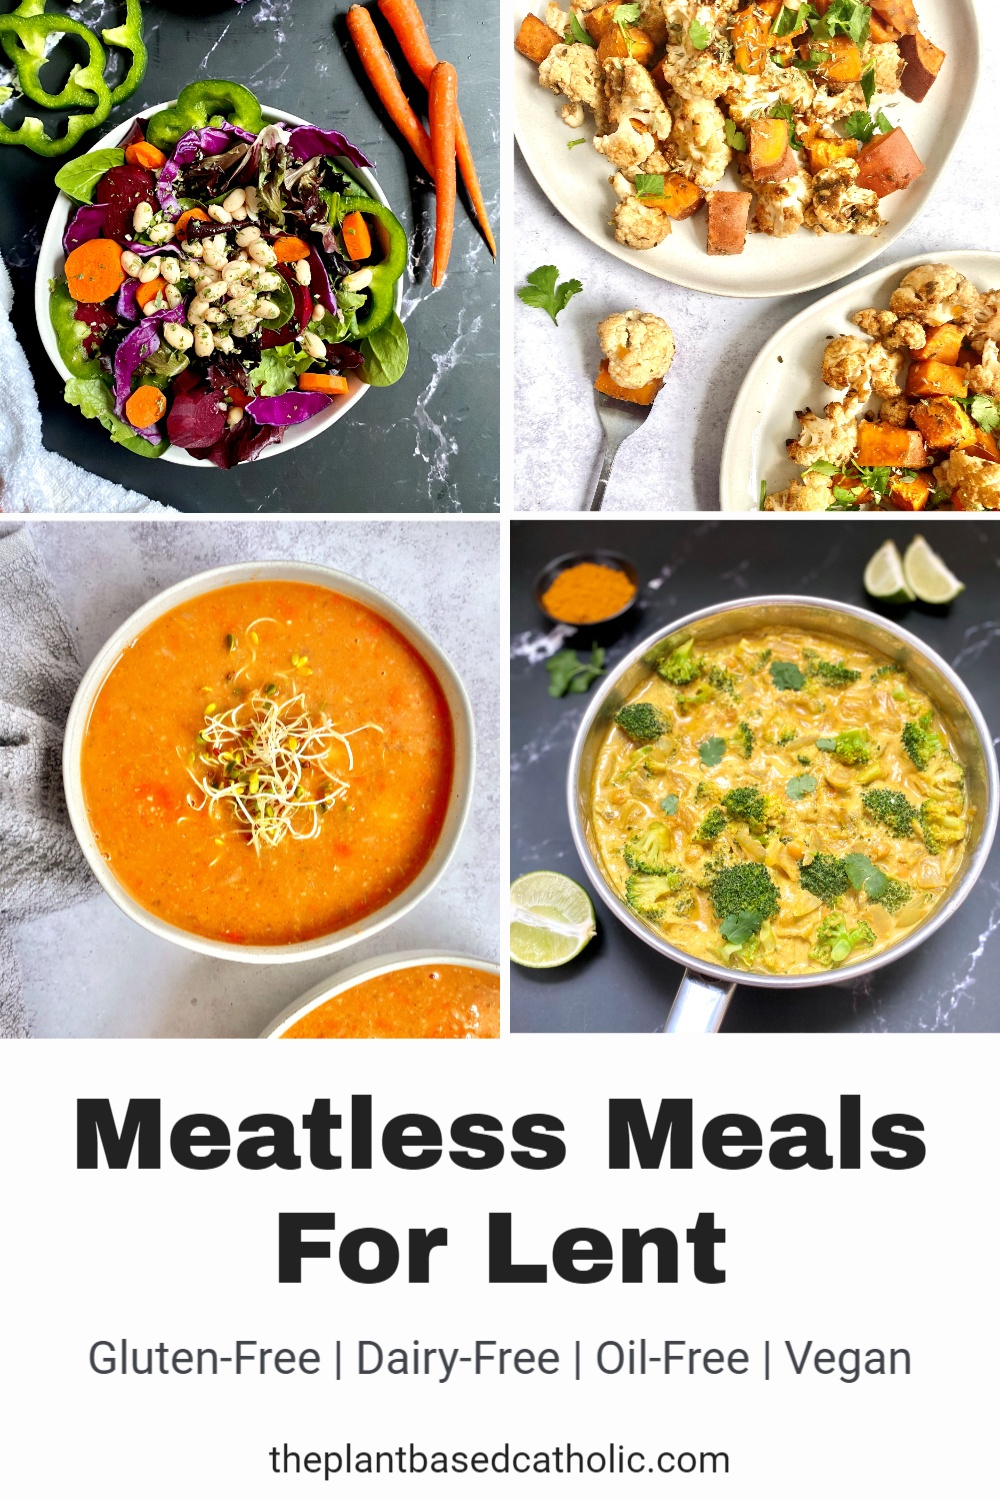 Meatless Meals for Lent Pinterest Graphic